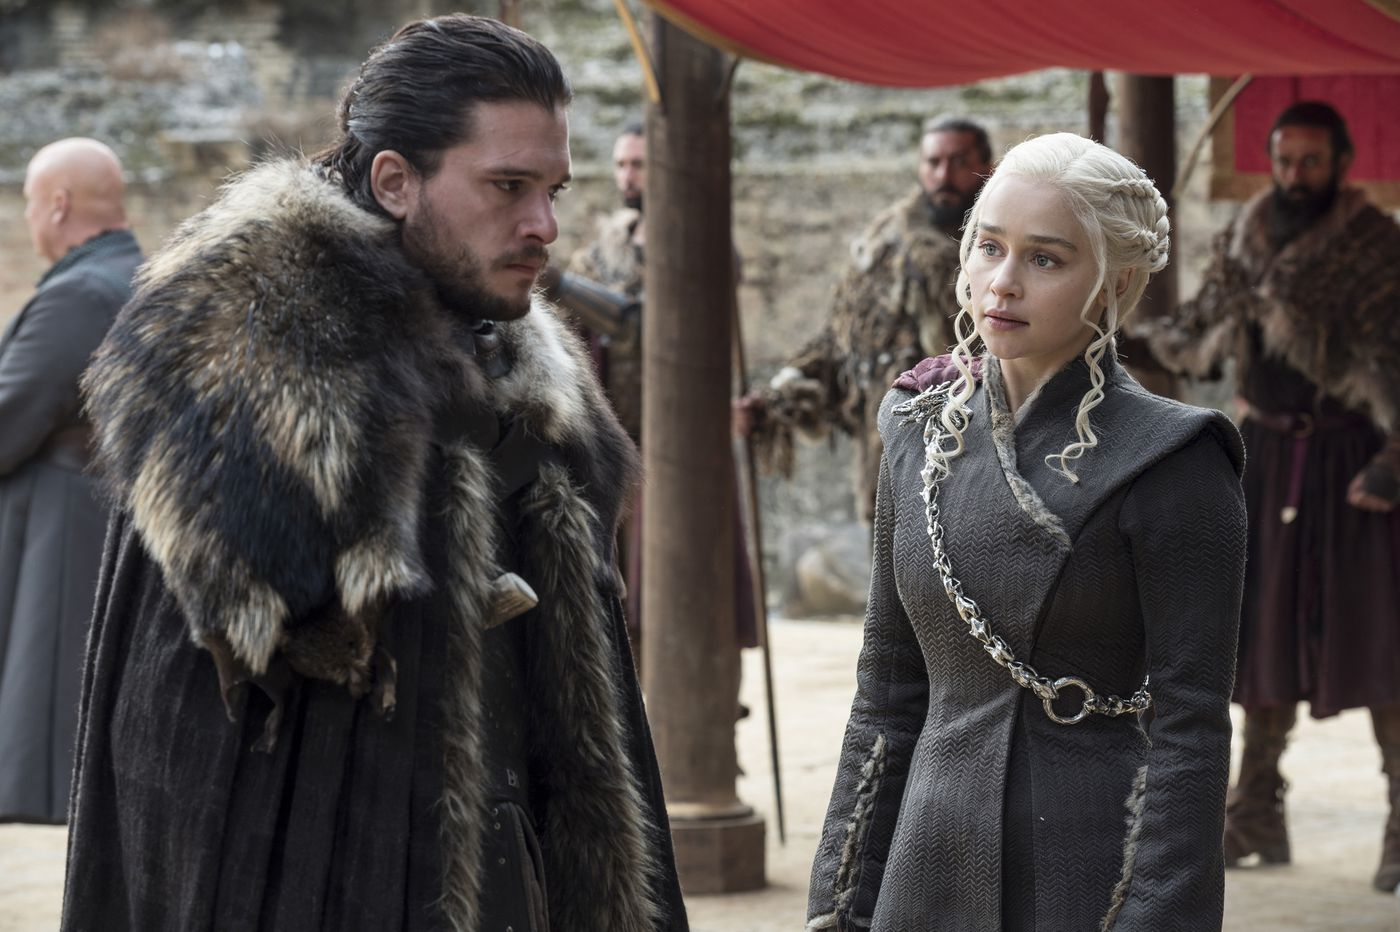 HBO orders pilot for 'Game of Thrones' prequel